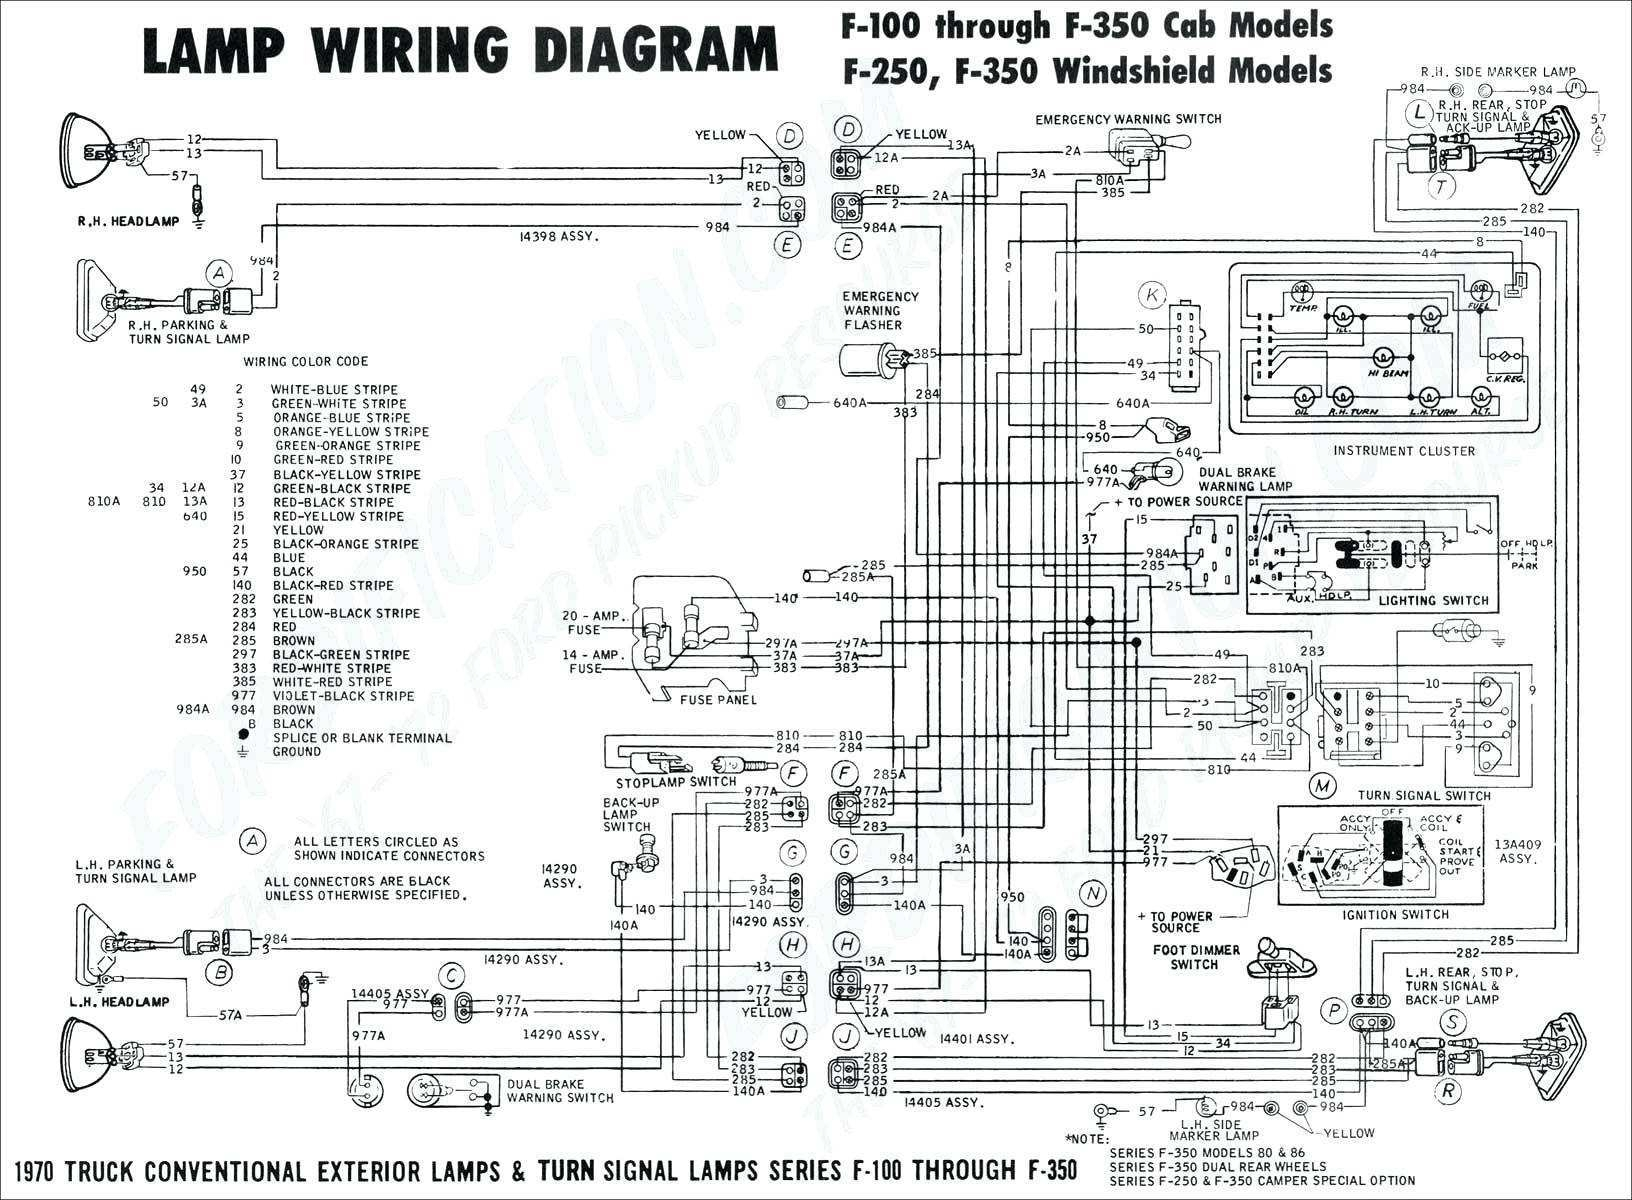 2006 Dodge Grand Caravan Tail Light Wiring Diagram